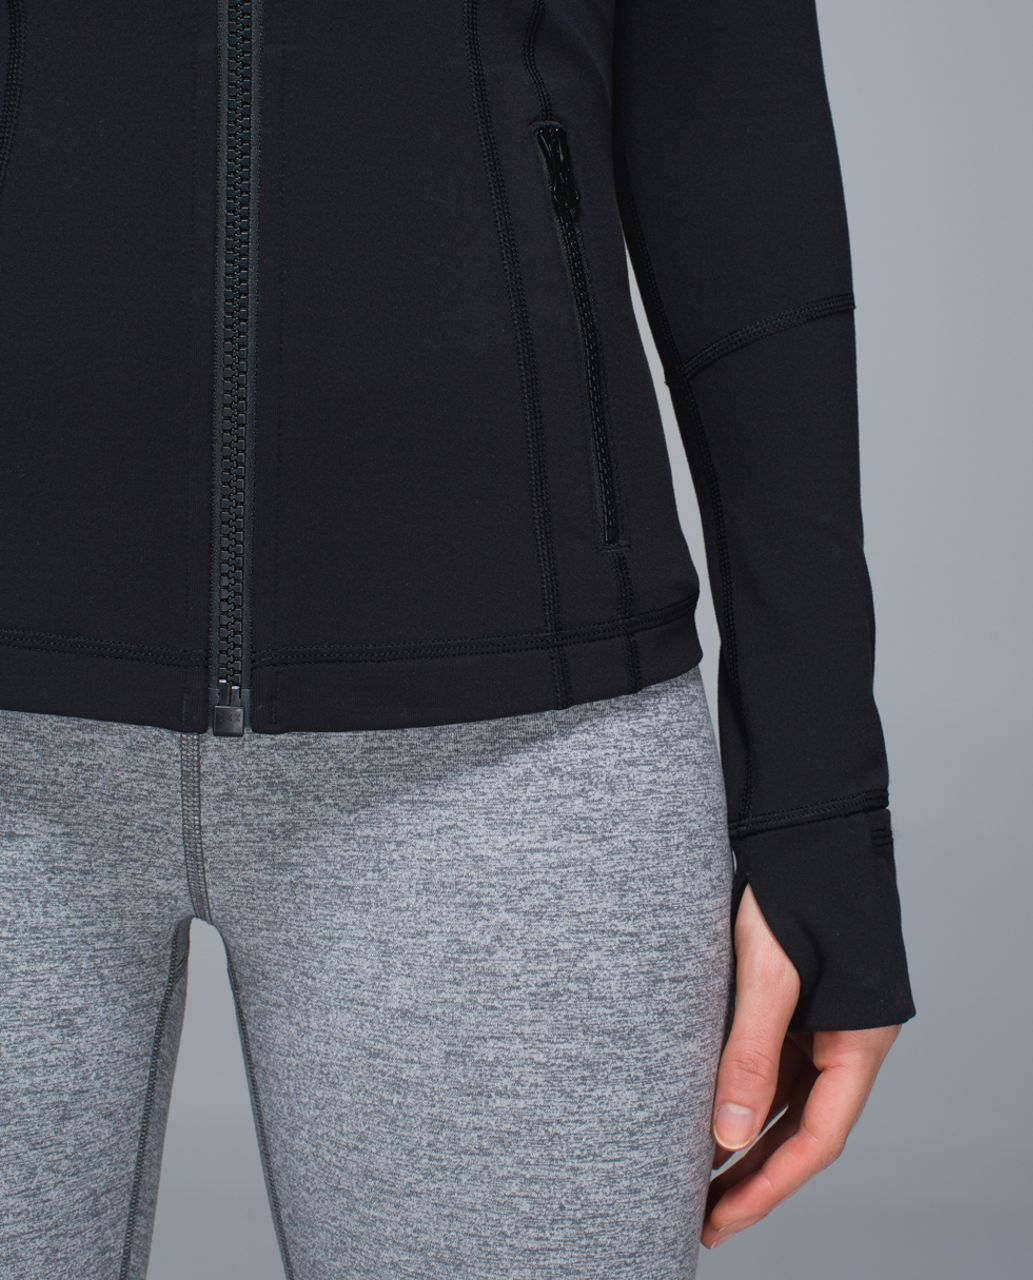 Lululemon Define Jacket - Black (First Release)